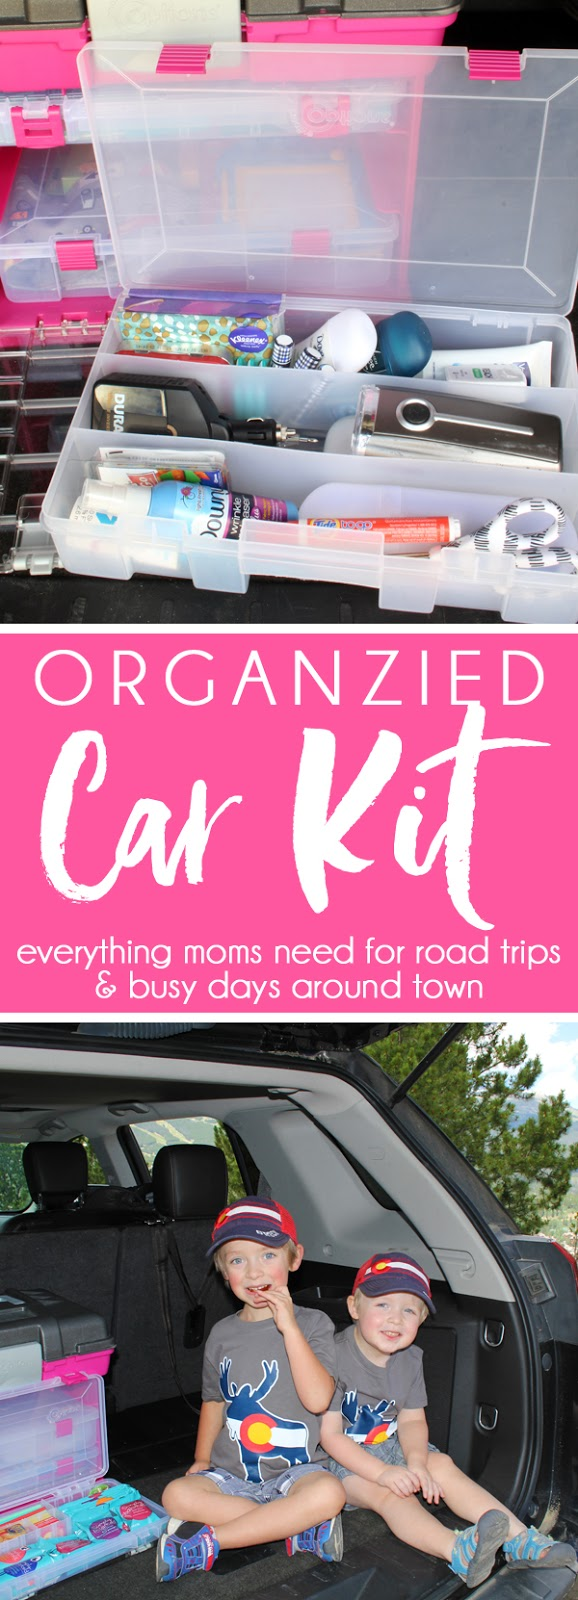 An ORGANIZED CAR KIT for families always on the go. DIY car storage and organizing tips to always be prepared with first aid, snacks, tools, hygiene, clothing care, and entertainment. The perfect car organizing hack with everything moms need for road trips and busy days around town.